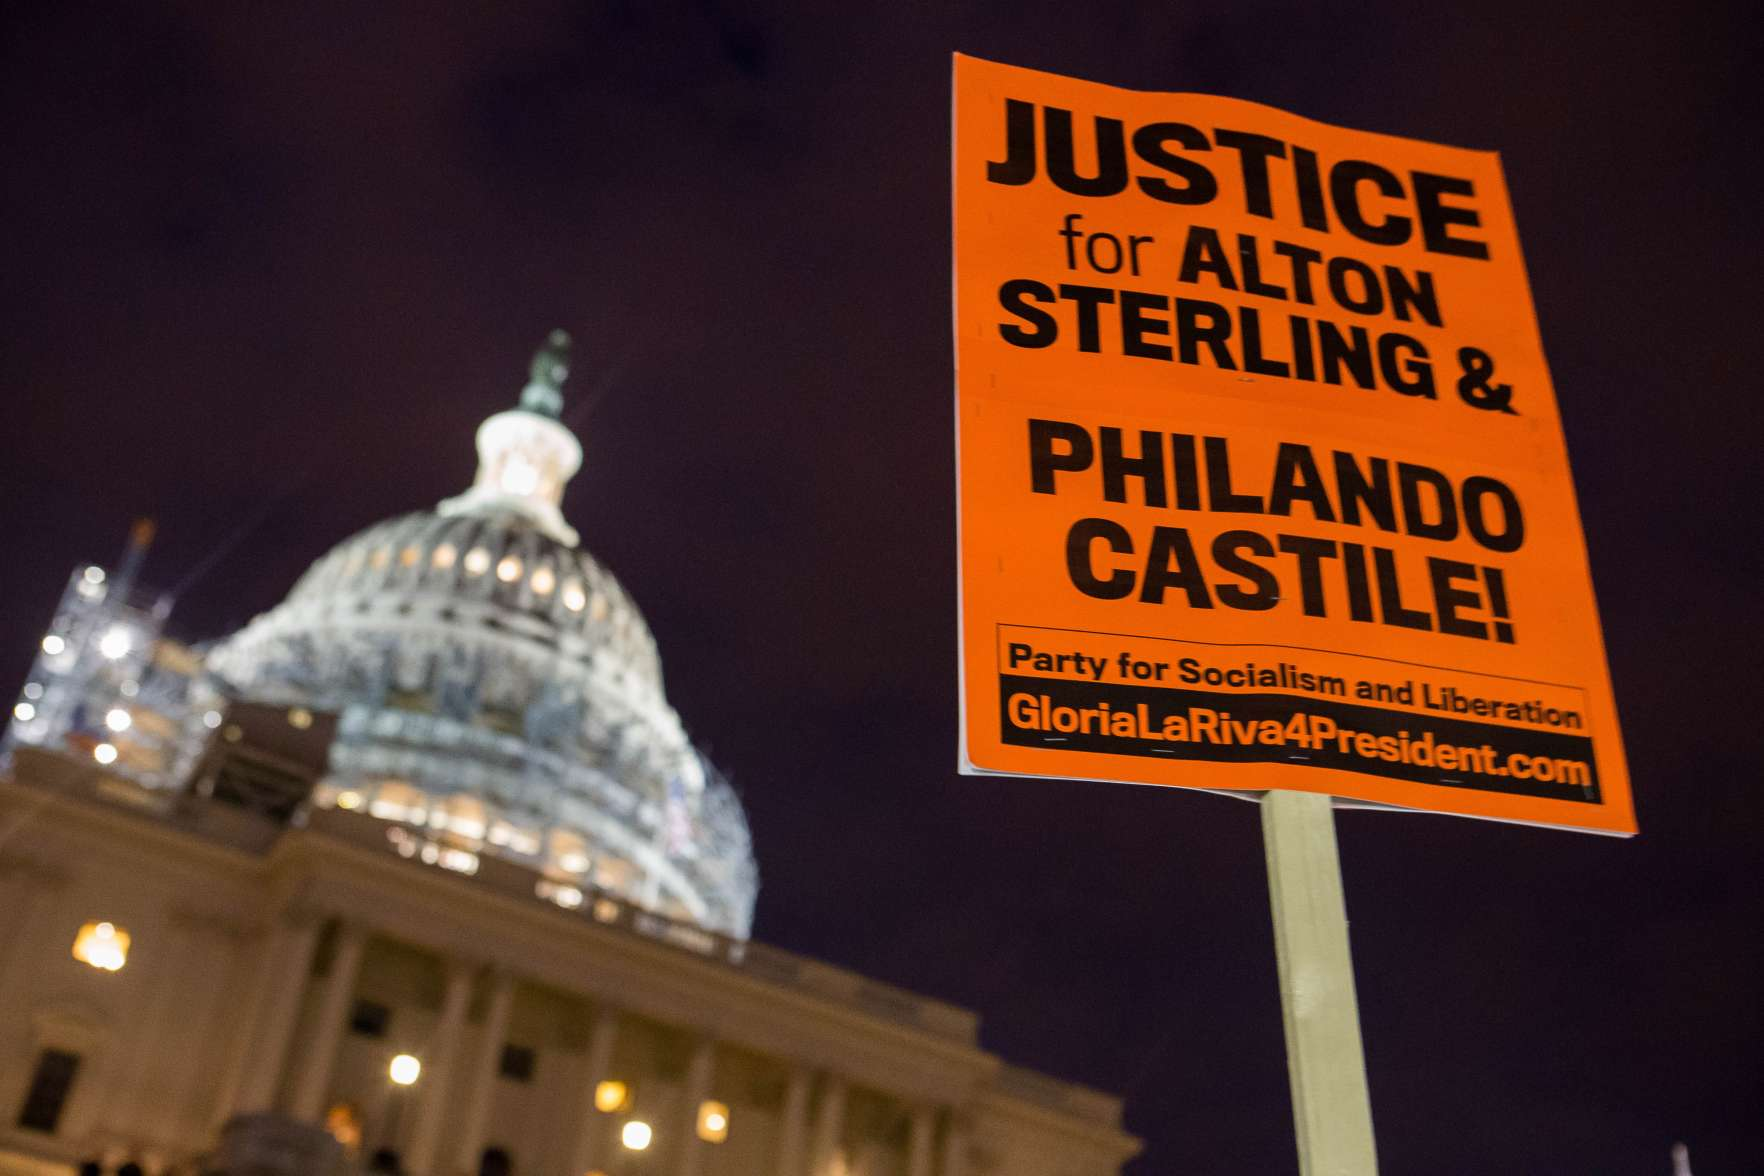 A demonstrator holds a sign outside of The Capitol Building after marching from The White House on July 7, 2016 in Washington, DC.  Protestors gathered in Washington to protest the fatal police shootings of Alton Sterling and Philando Castile.